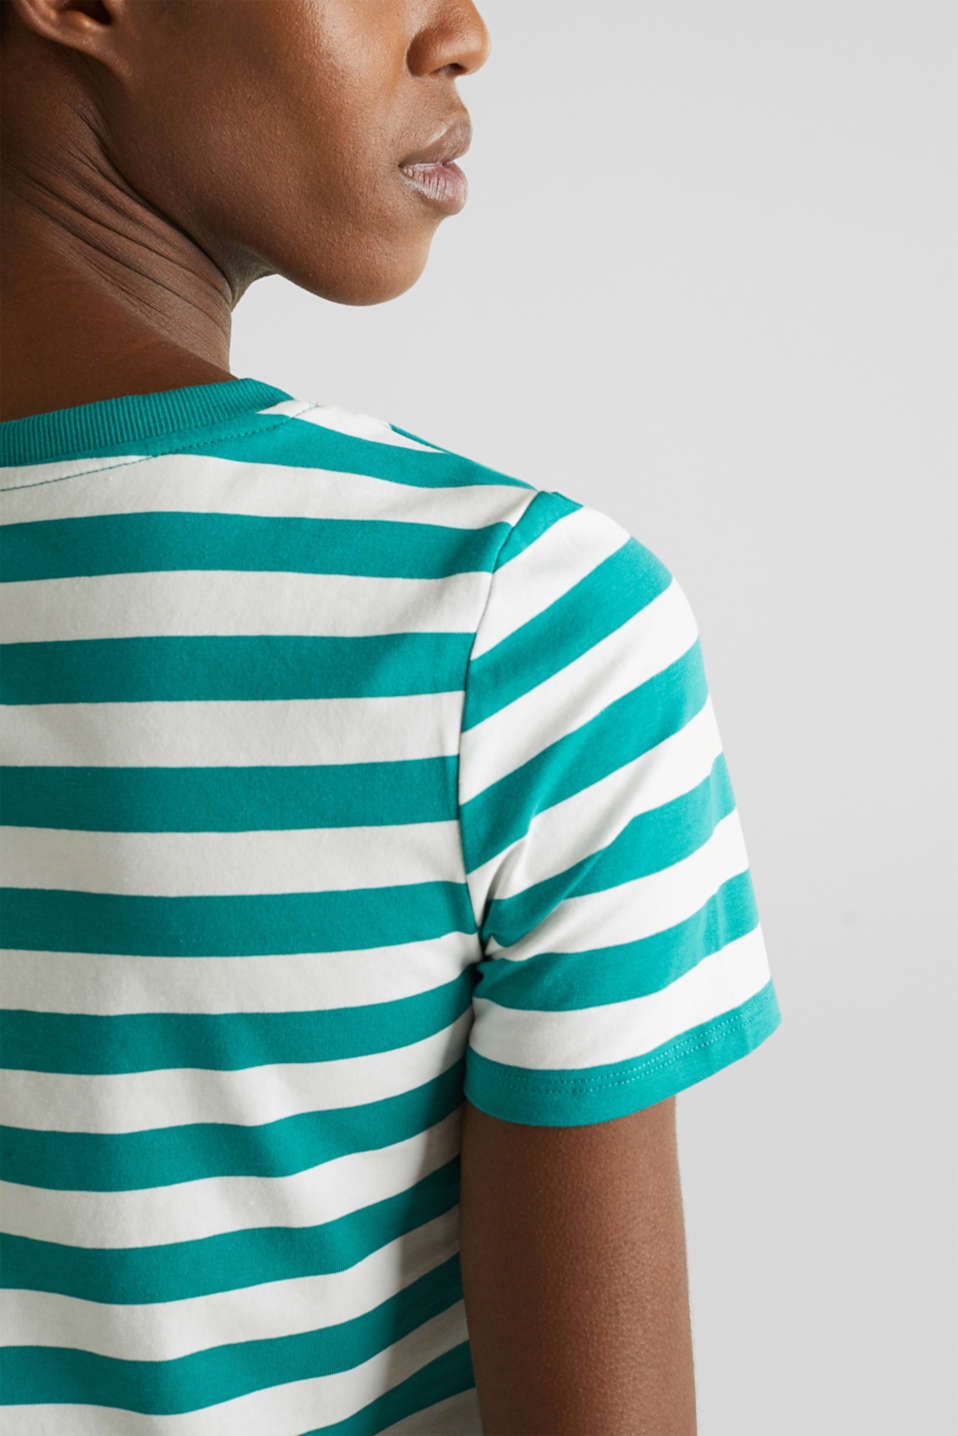 Striped, stretch cotton T-shirt, TEAL GREEN 4, detail image number 2